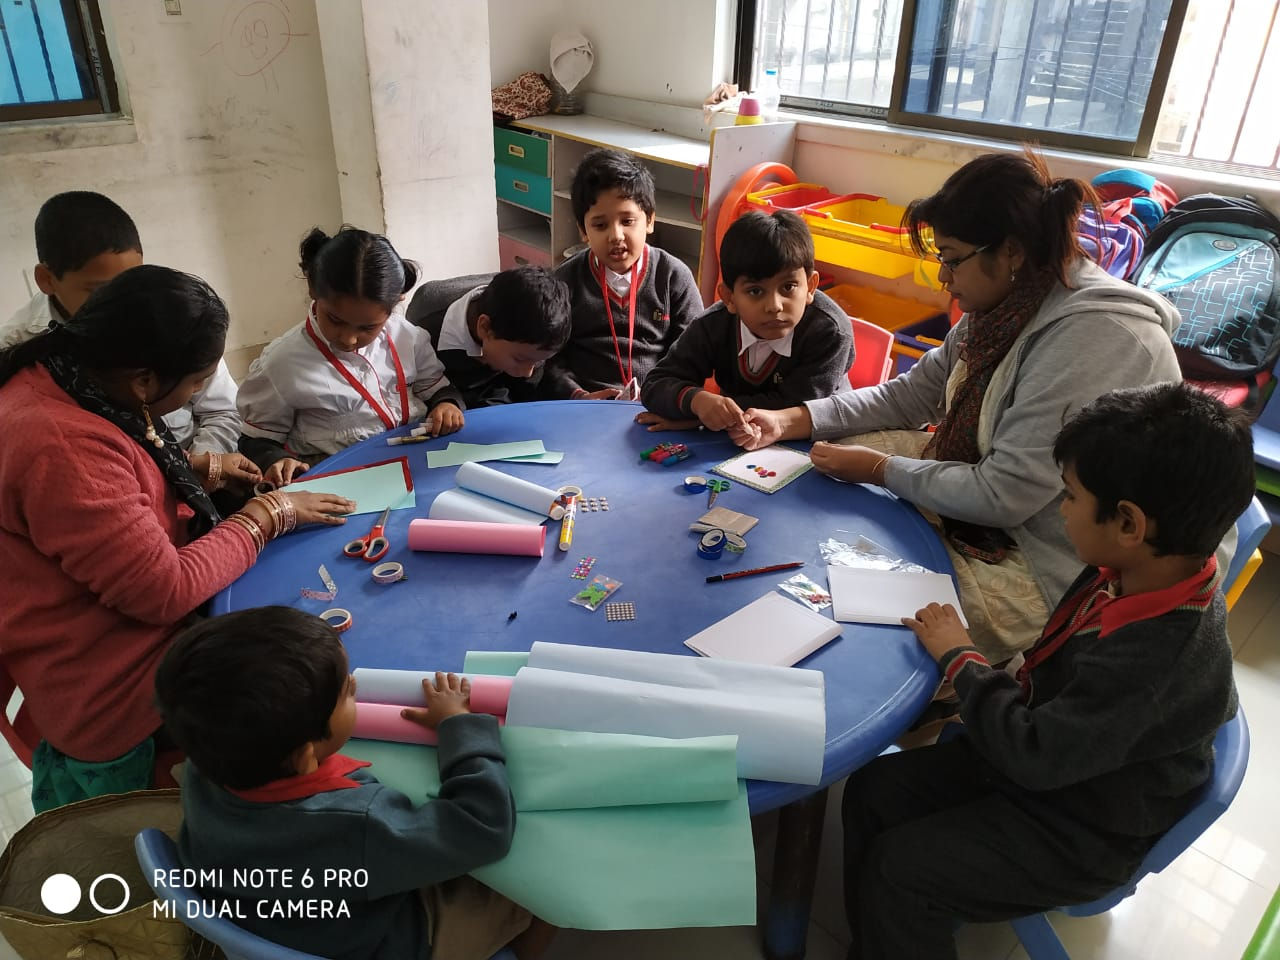 GREETING CARD MAKING ACTIVITY